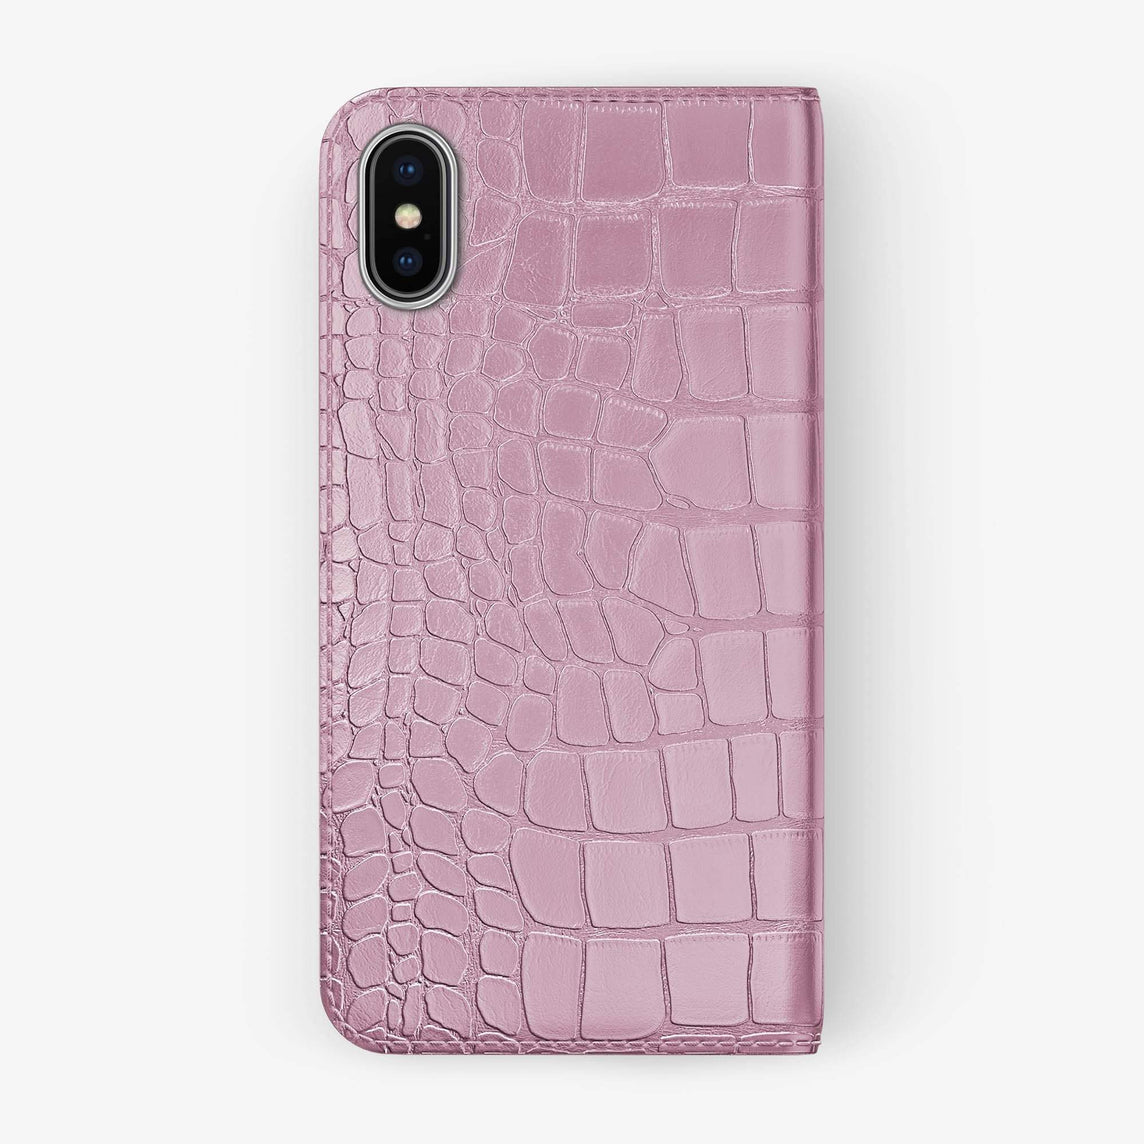 Pink Alligator iPhone Folio Case for iPhone XS Max finishing stainless steel - Hadoro Luxury Cases